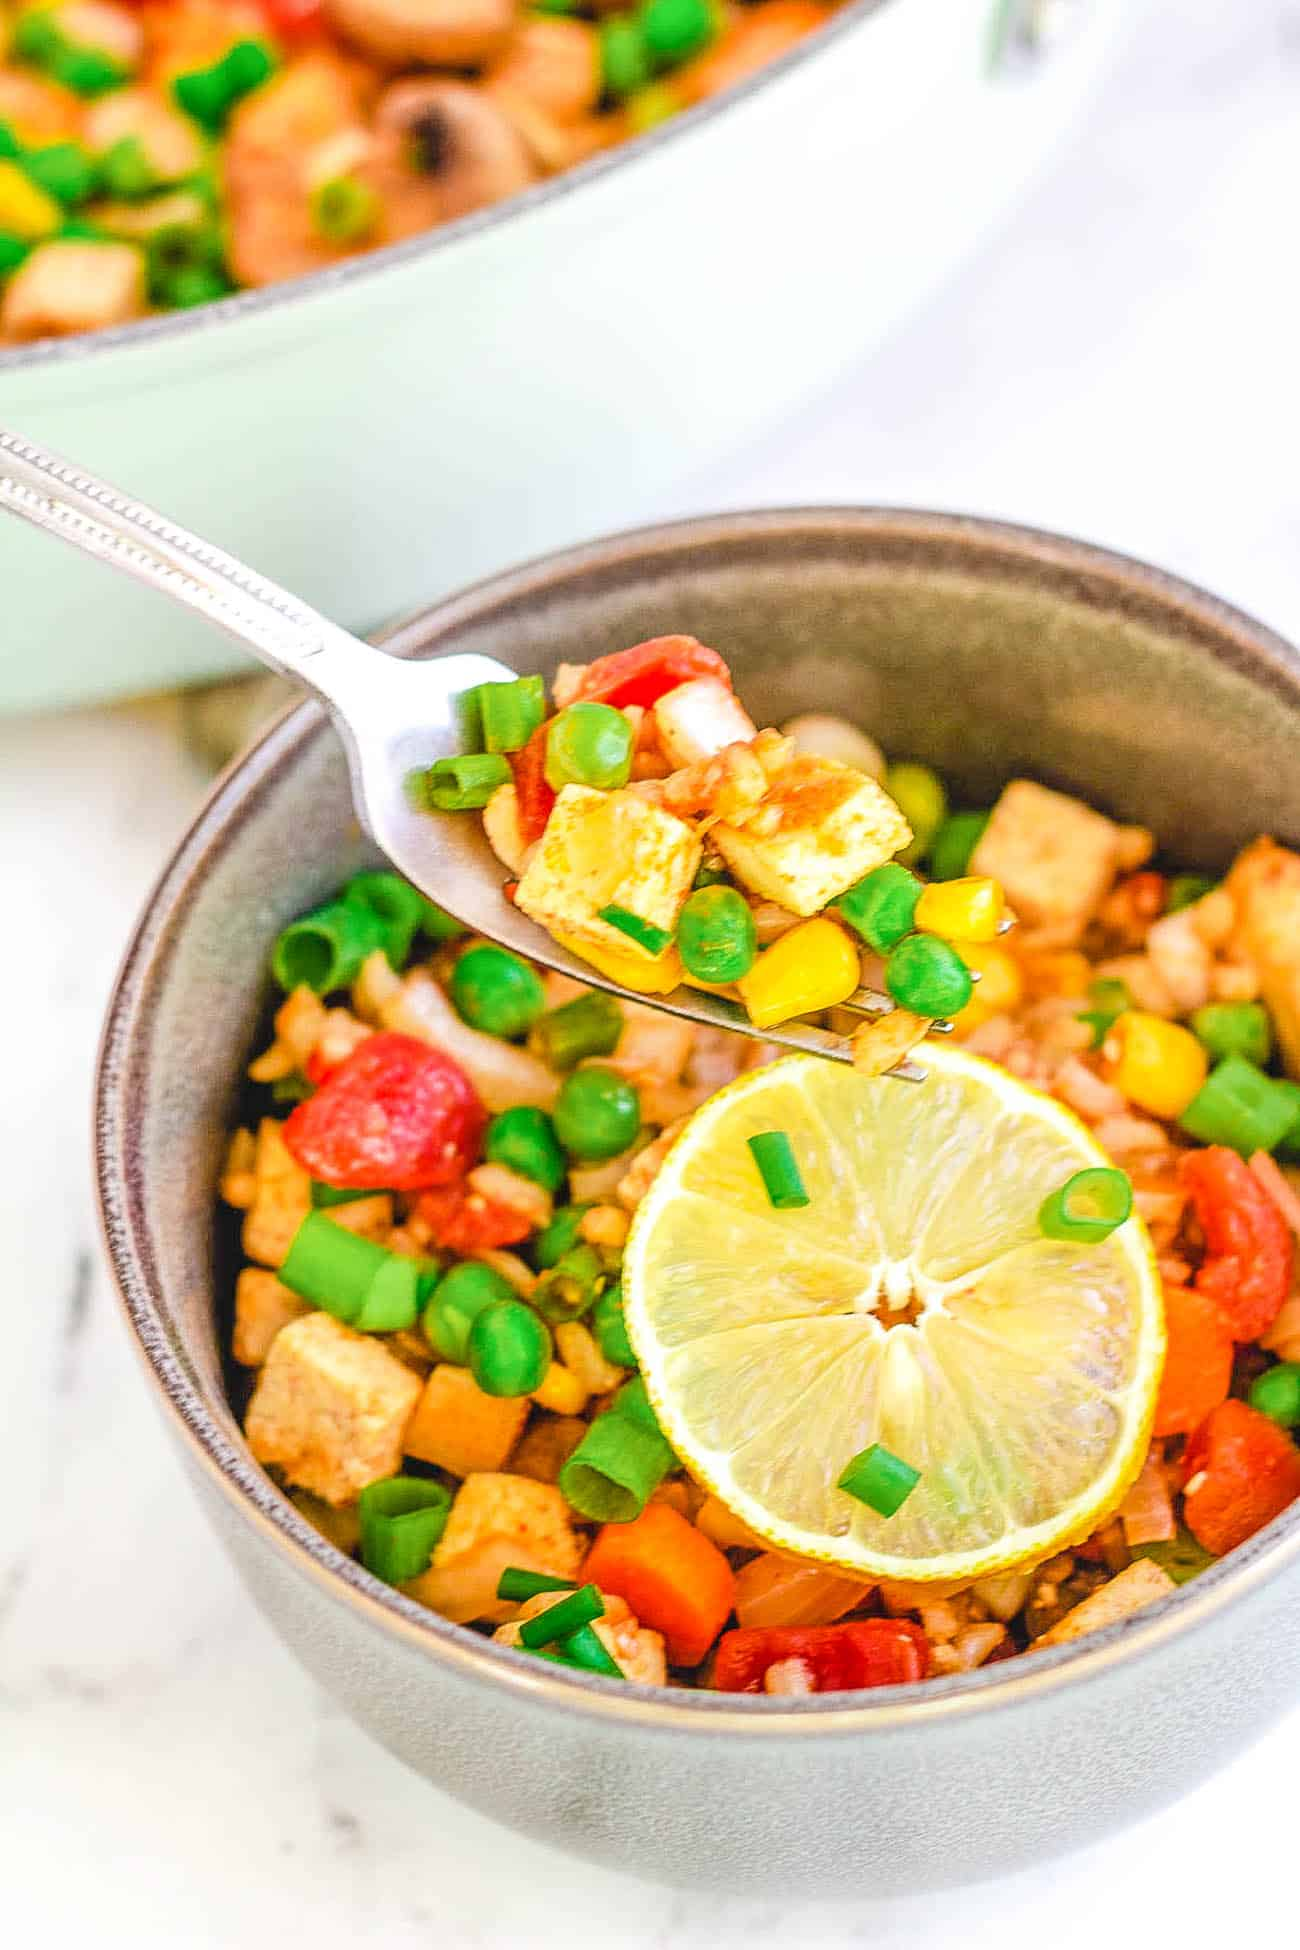 single serving of vegan paella with tofu with a skillet of paella in the background